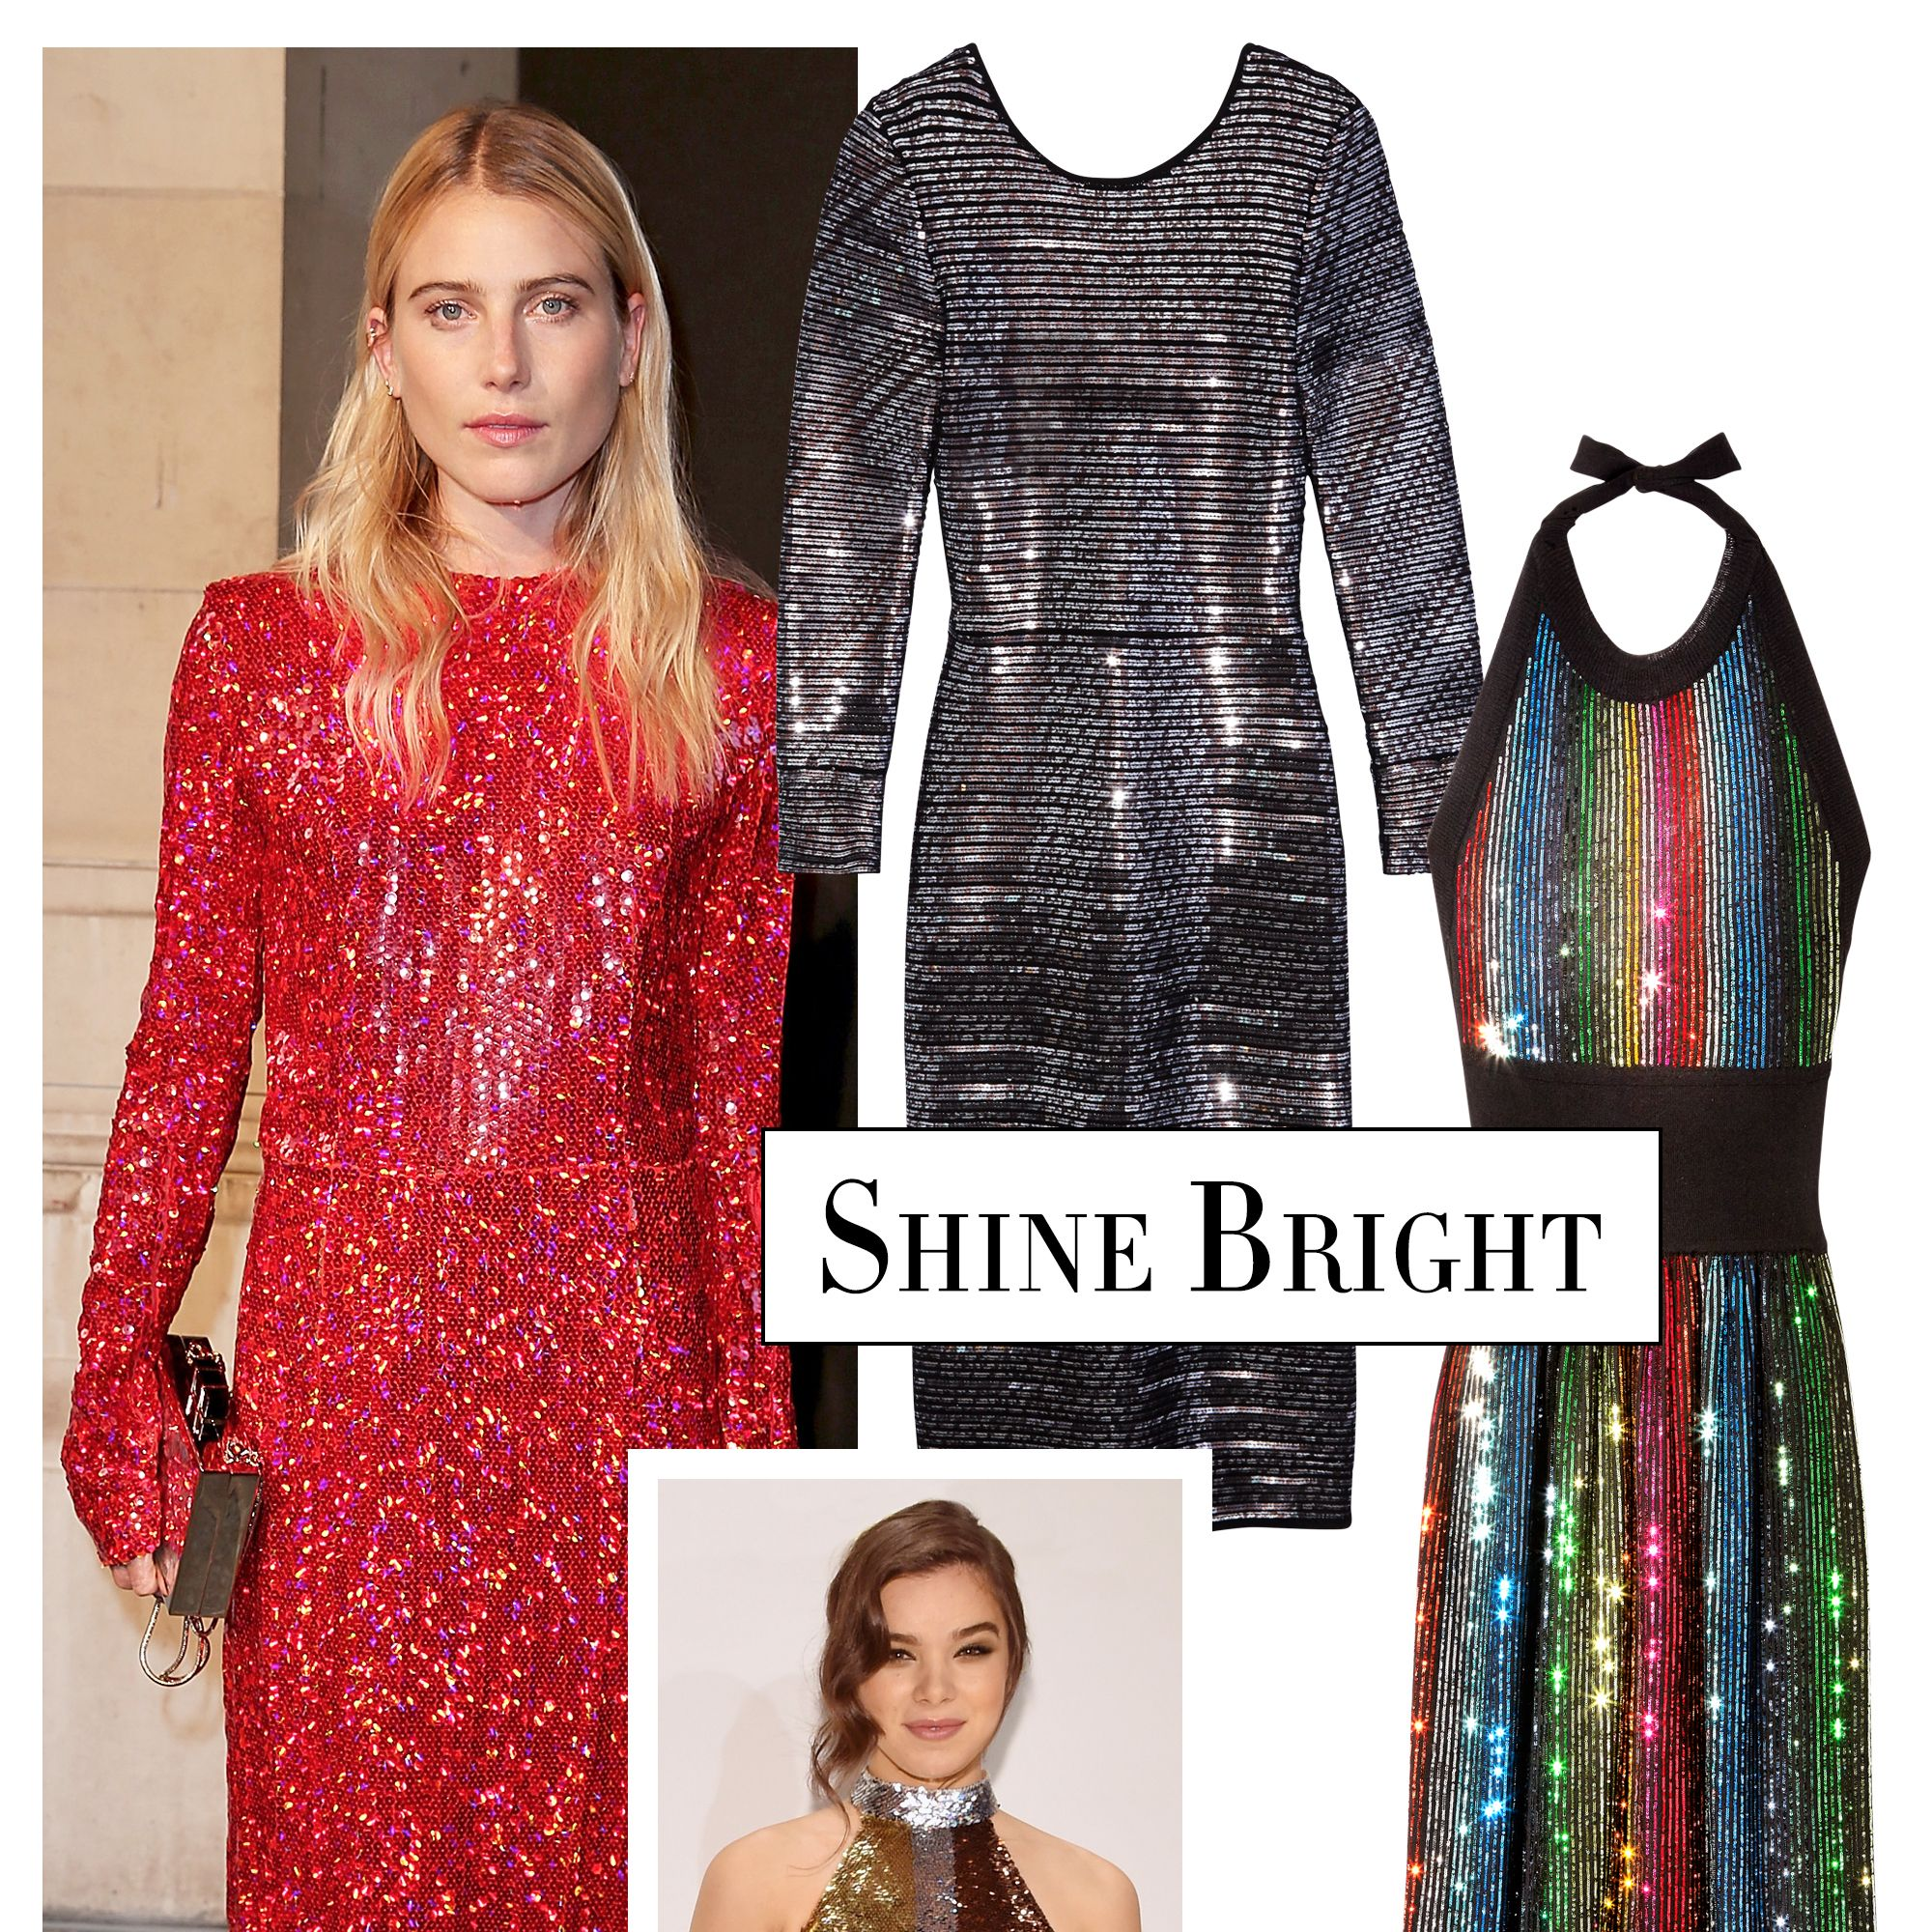 <p>Nothing says the holidays like sparkling sequins. Follow Dree Hemingway's lead and opt for a dress in single statement color, or go for a rainbow-hued design like Sonia Rykiel's disco-ready look.